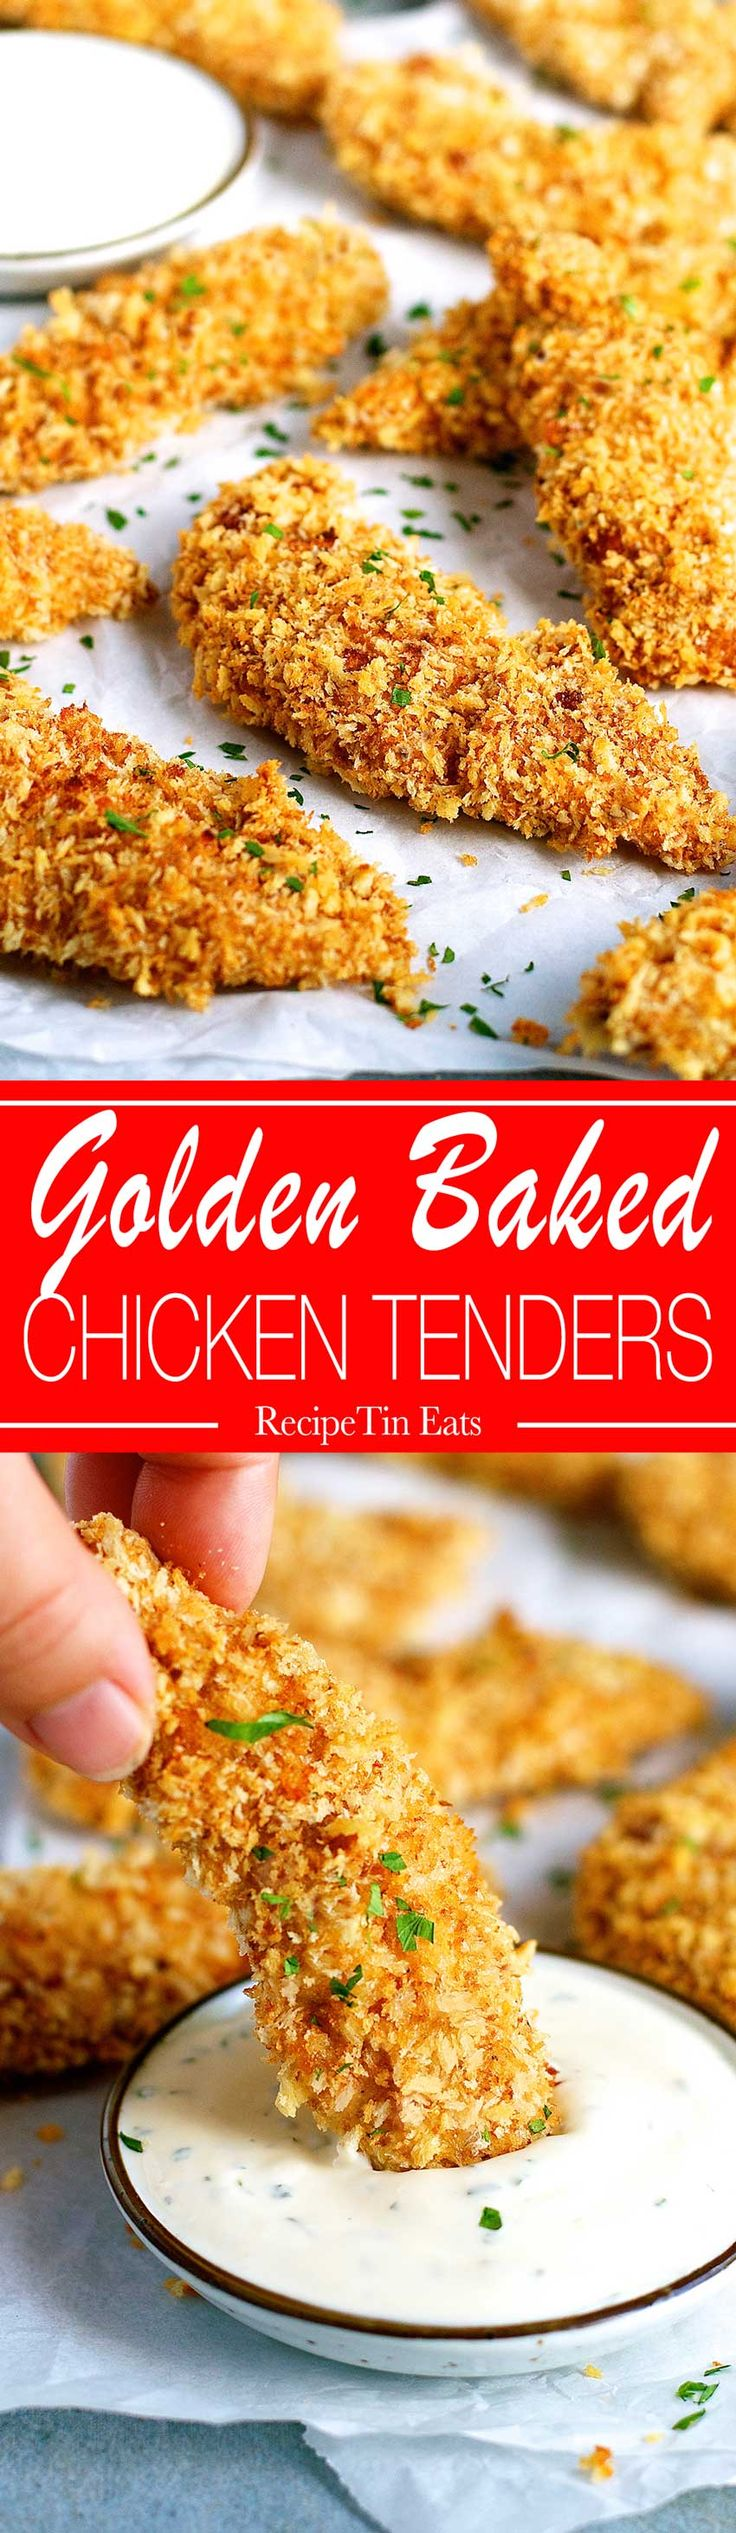 Crunchy Baked Breaded Chicken Tenders | Made this for the family the other night, INSANELY delicious!!!! And NO MESSY FINGERS!